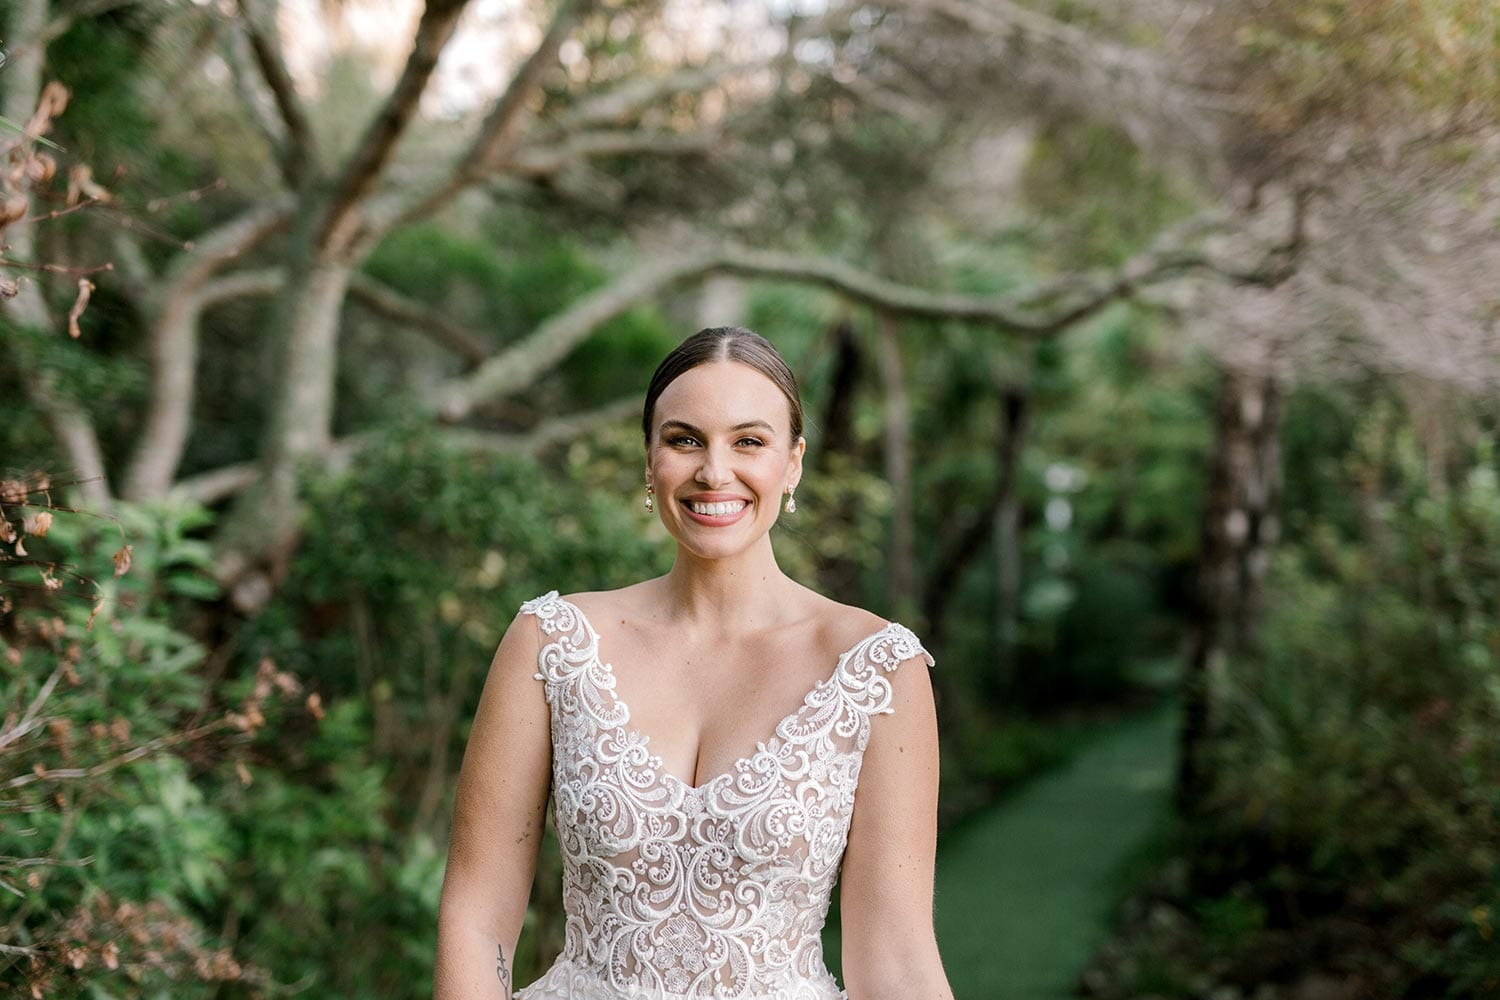 Ashleigh Wedding Dress from Vinka Design. Wedding dress with semi-sheer, richly embroidered fitted bodice on a nude base adorned with guipure lace. Dramatic silk dupion full skirt with side pockets. Close up detail of bodice, photographed at Tui Hills by Emmaline Photography.